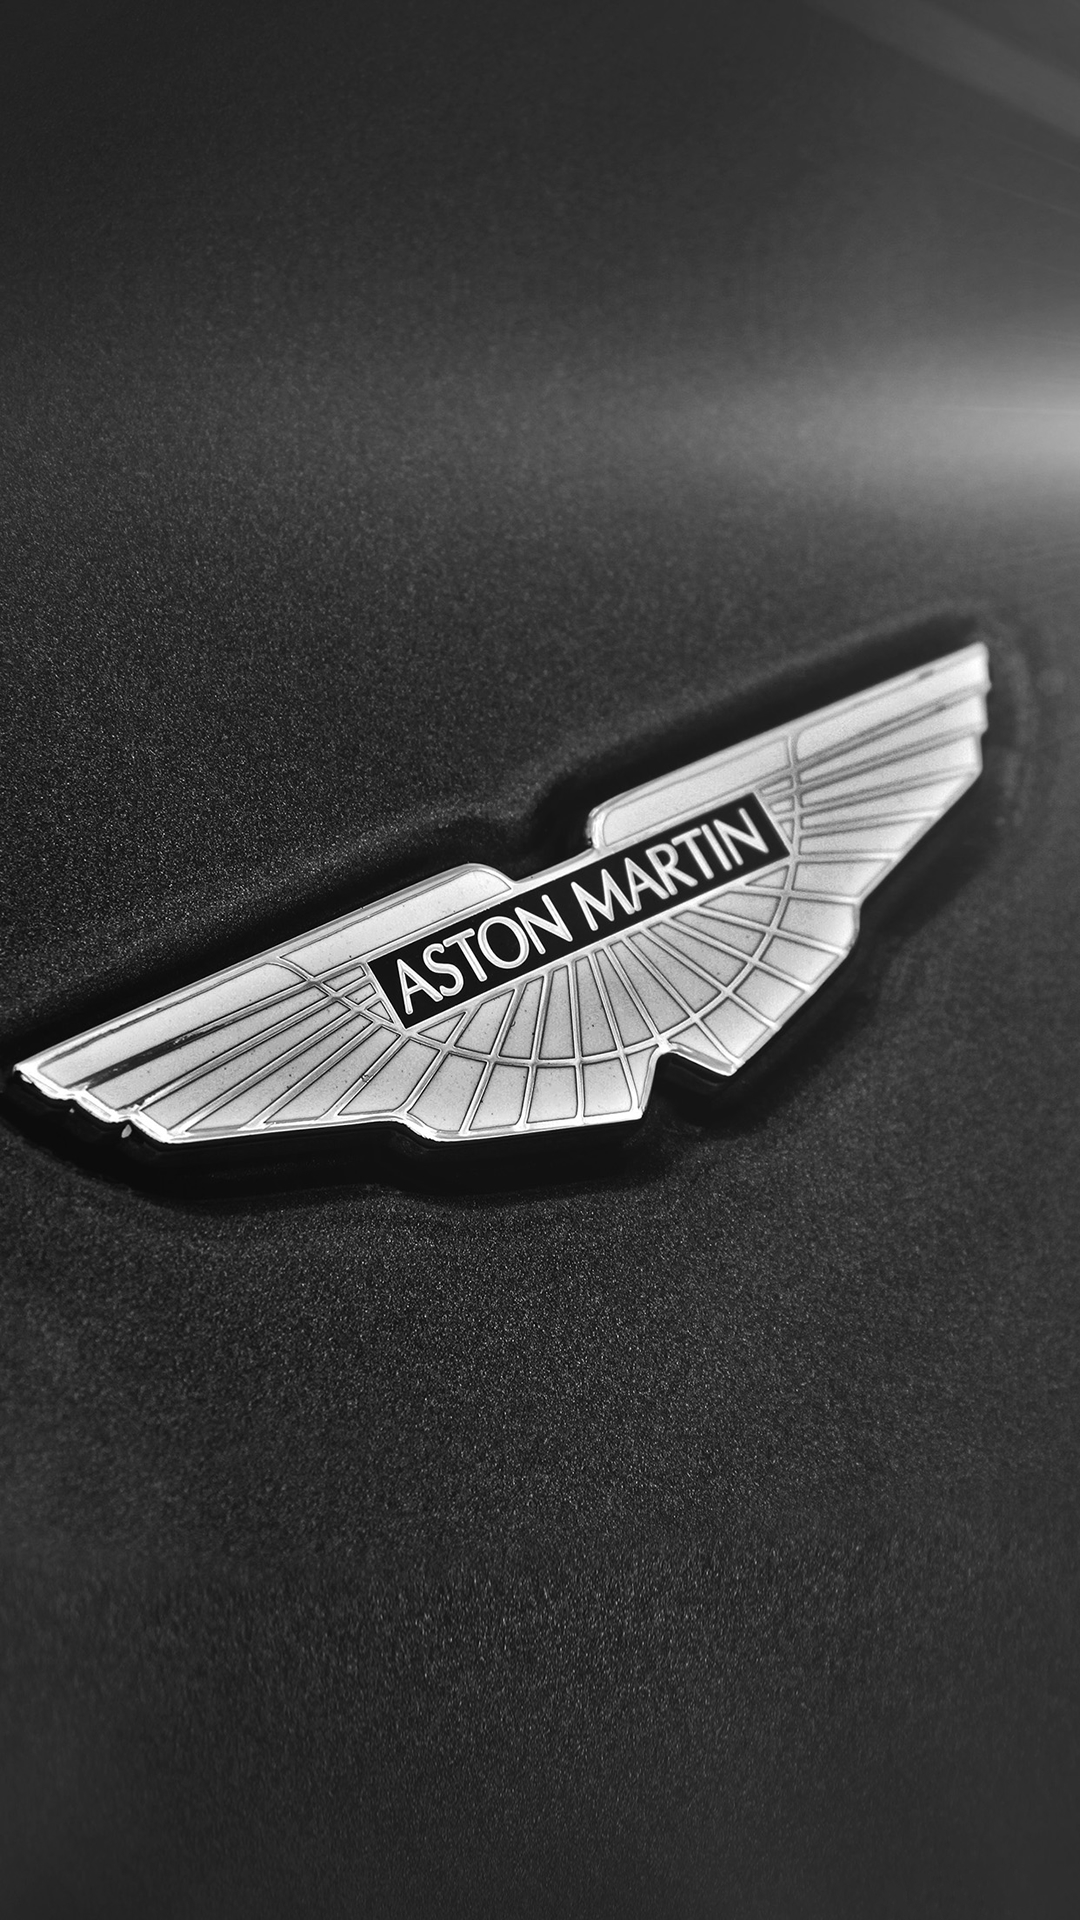 Simple Aston Martin Logo Dark Background iPhone 8 Wallpaper 1080x1920